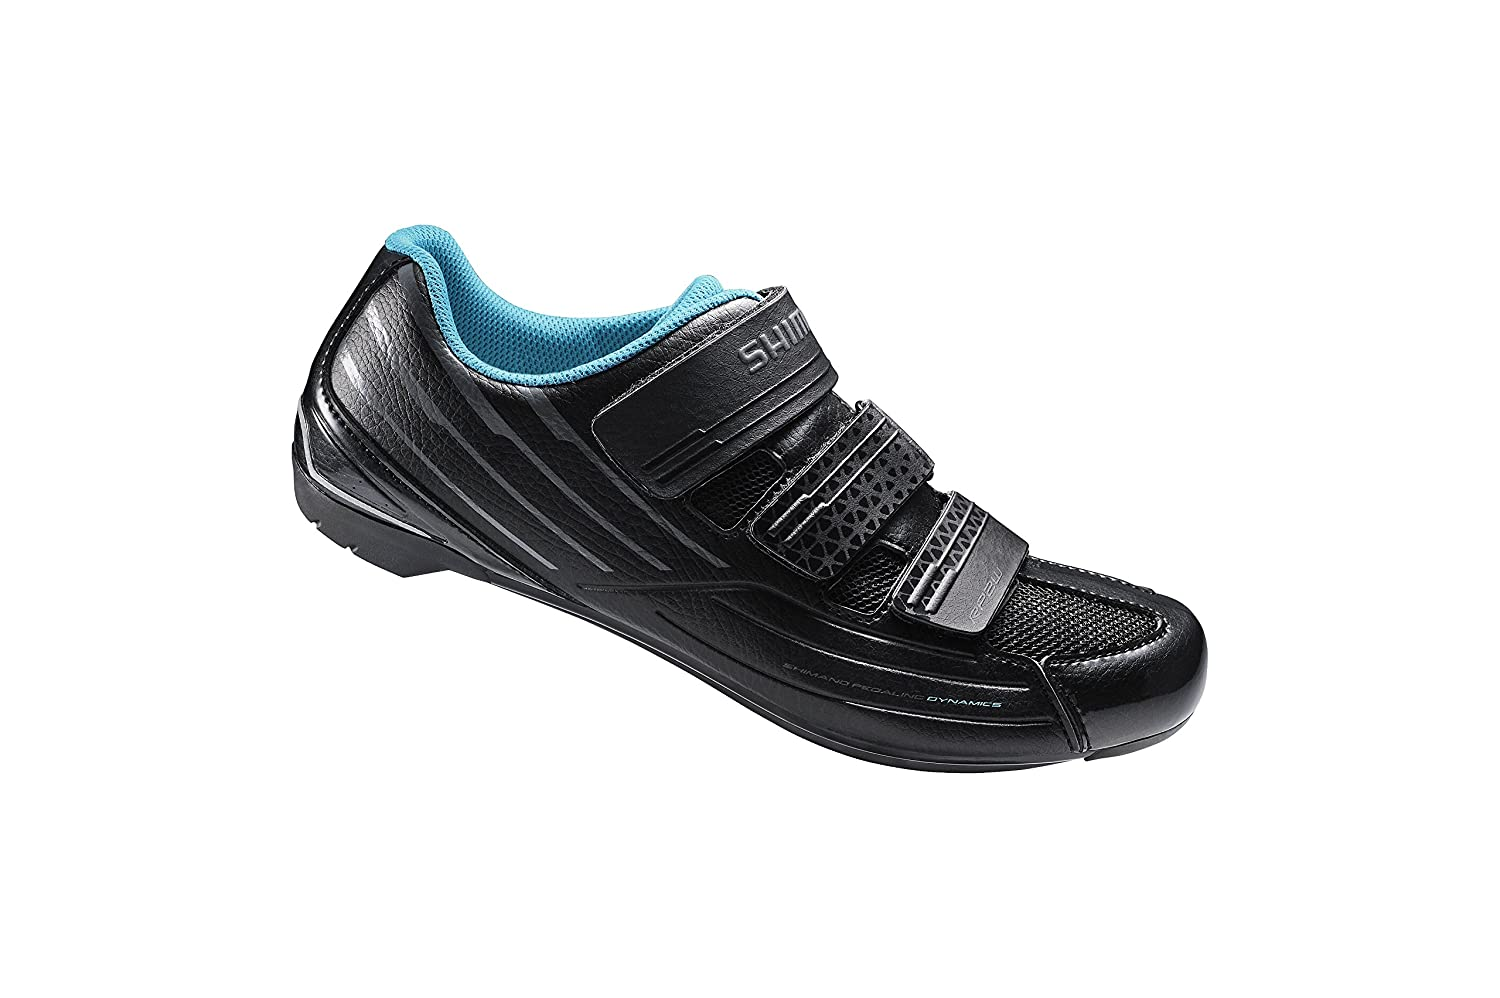 Shimano Women's SH-RP2W Road Shoes B00ZUYFRNG 44|Black/Blue